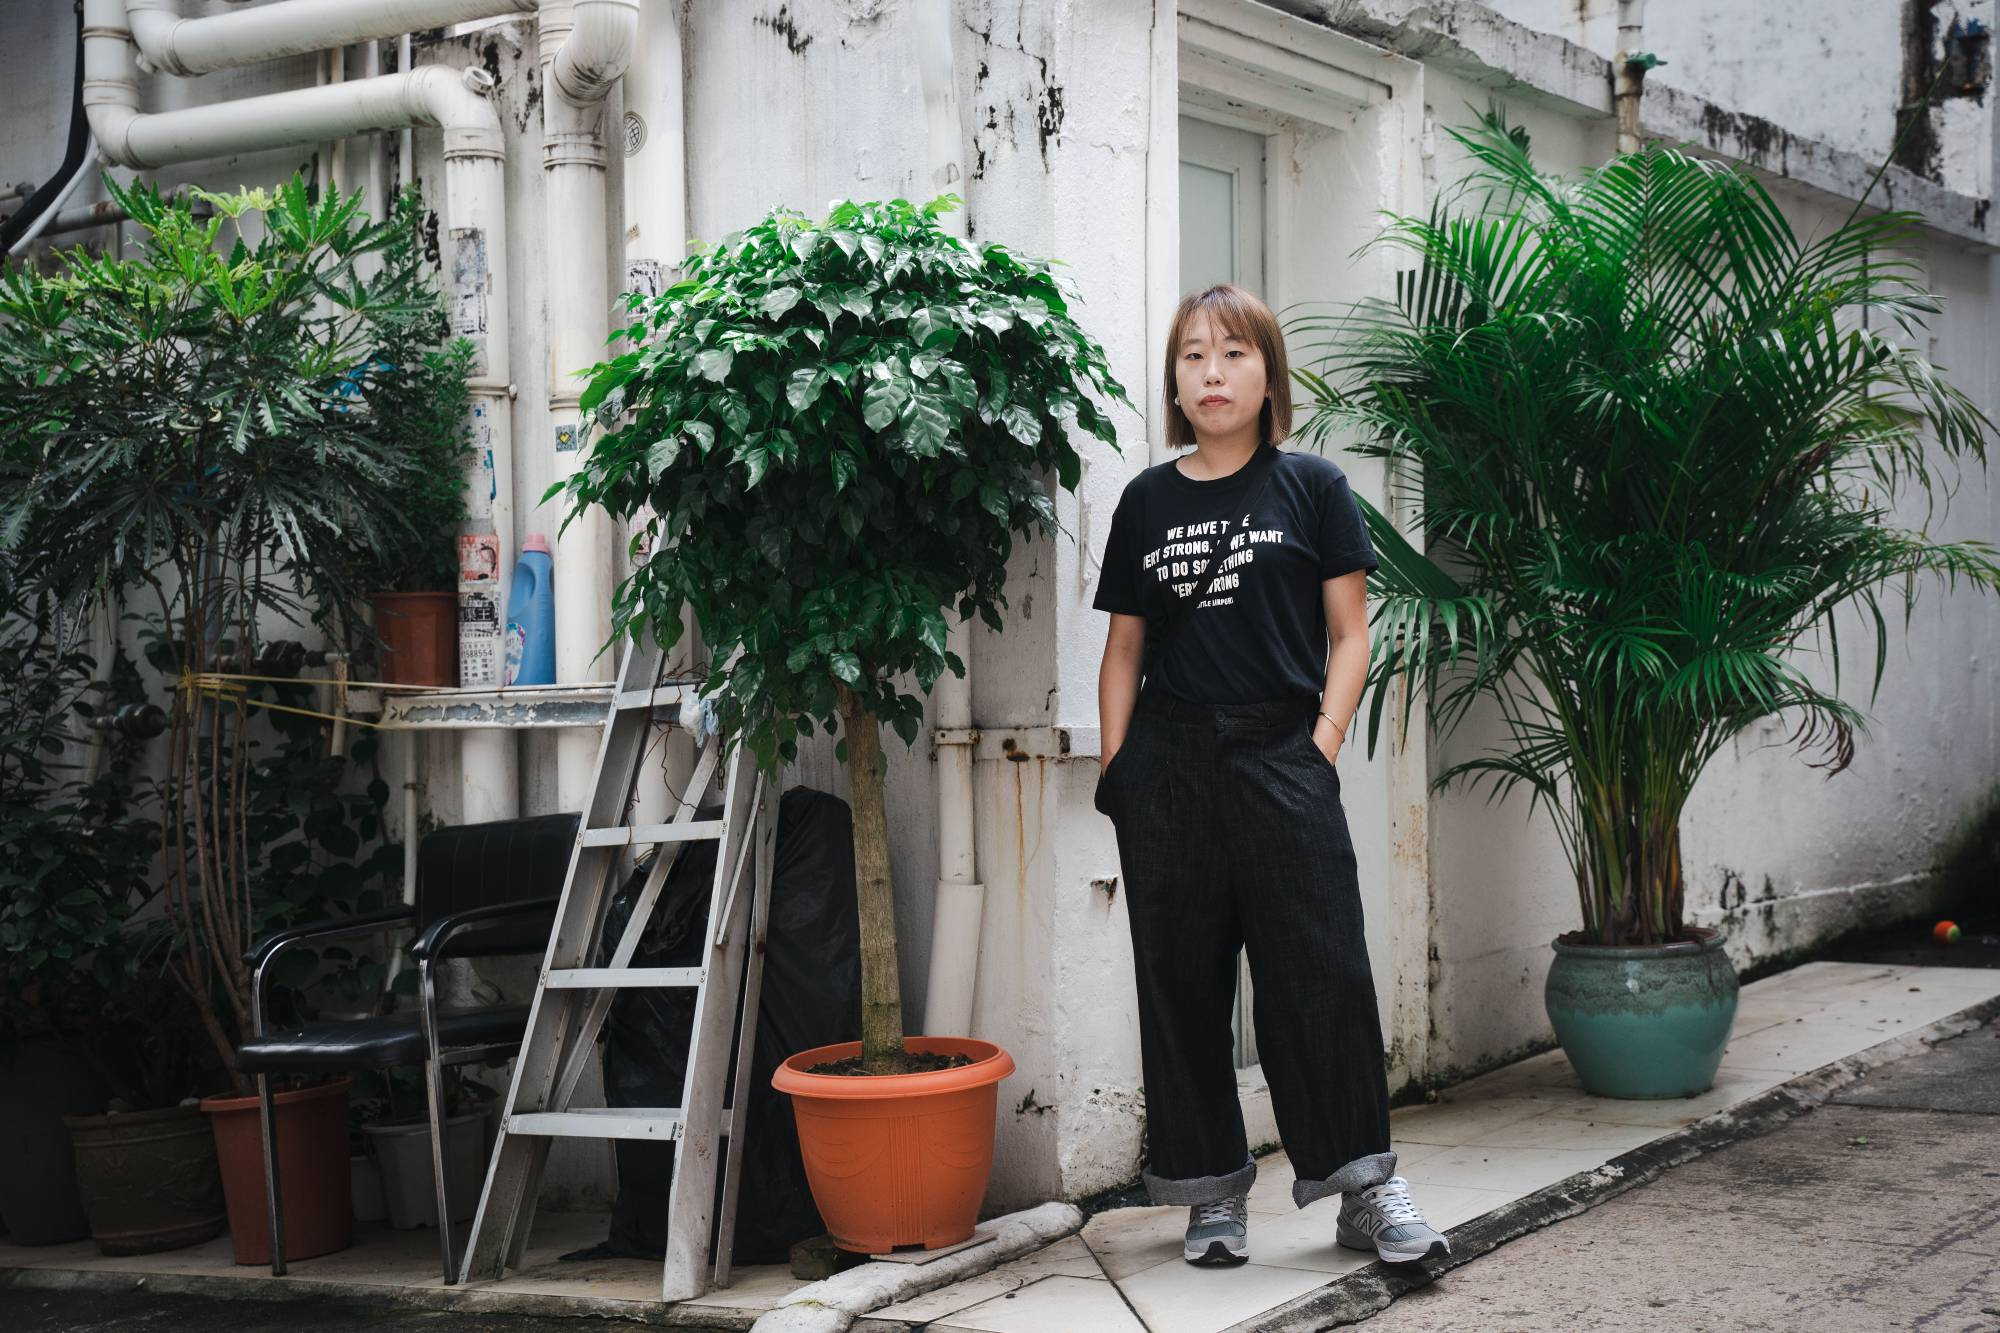 Mok Kwan-ling, an independent film director, was ordered by the censors to make 14 cuts and to change the name of her film, 'Far From Home.' | ANTHONY KWAN / THE NEW YORK TIMES